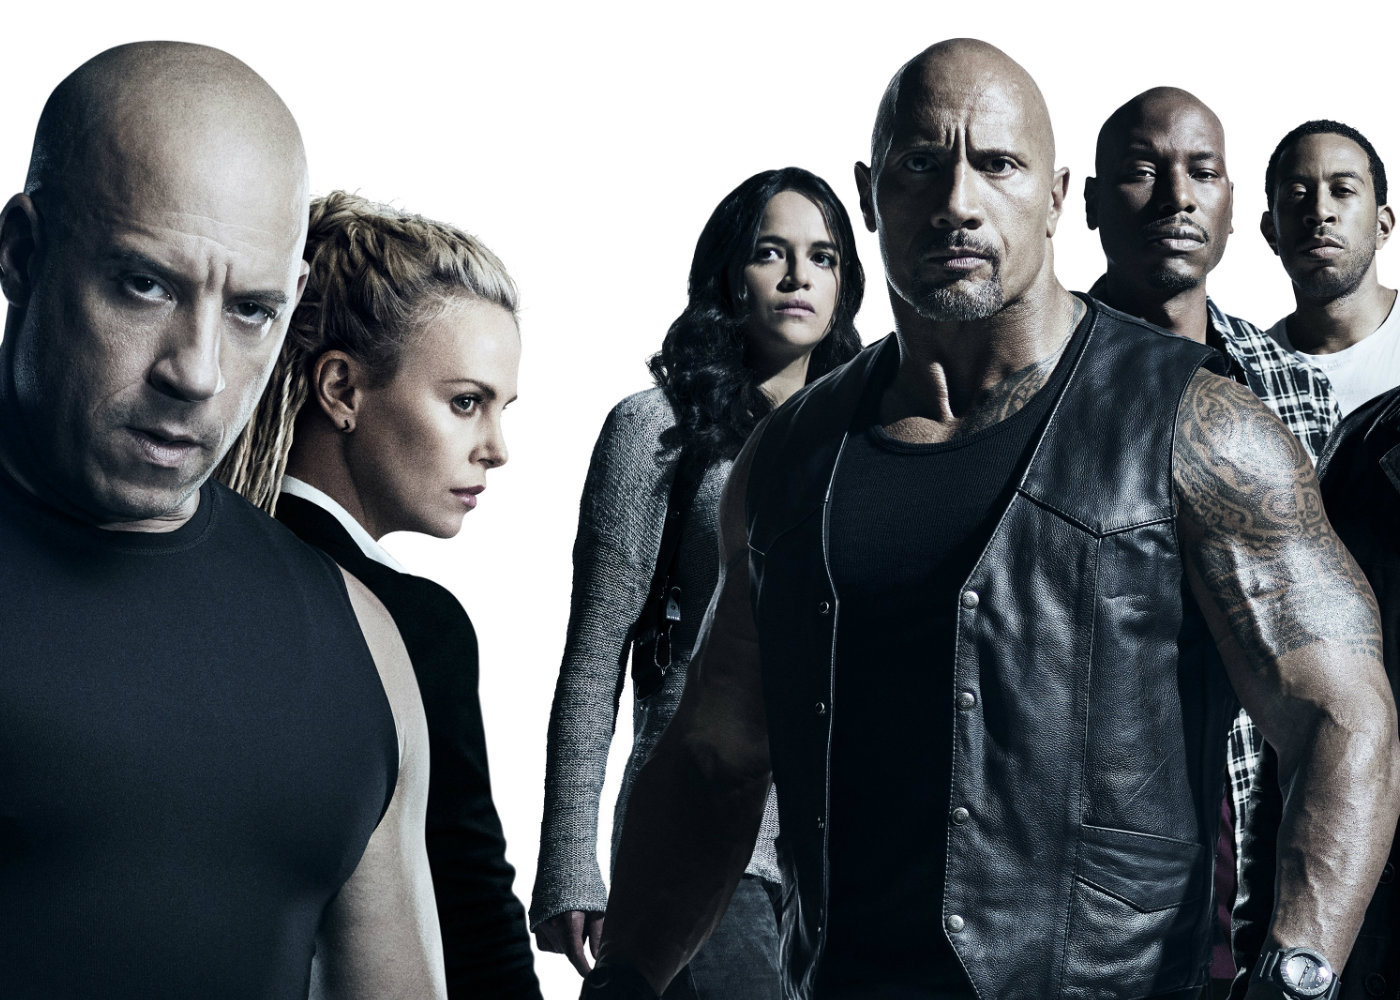 Box Office: The Fate of the Furious Races to First Place by Default